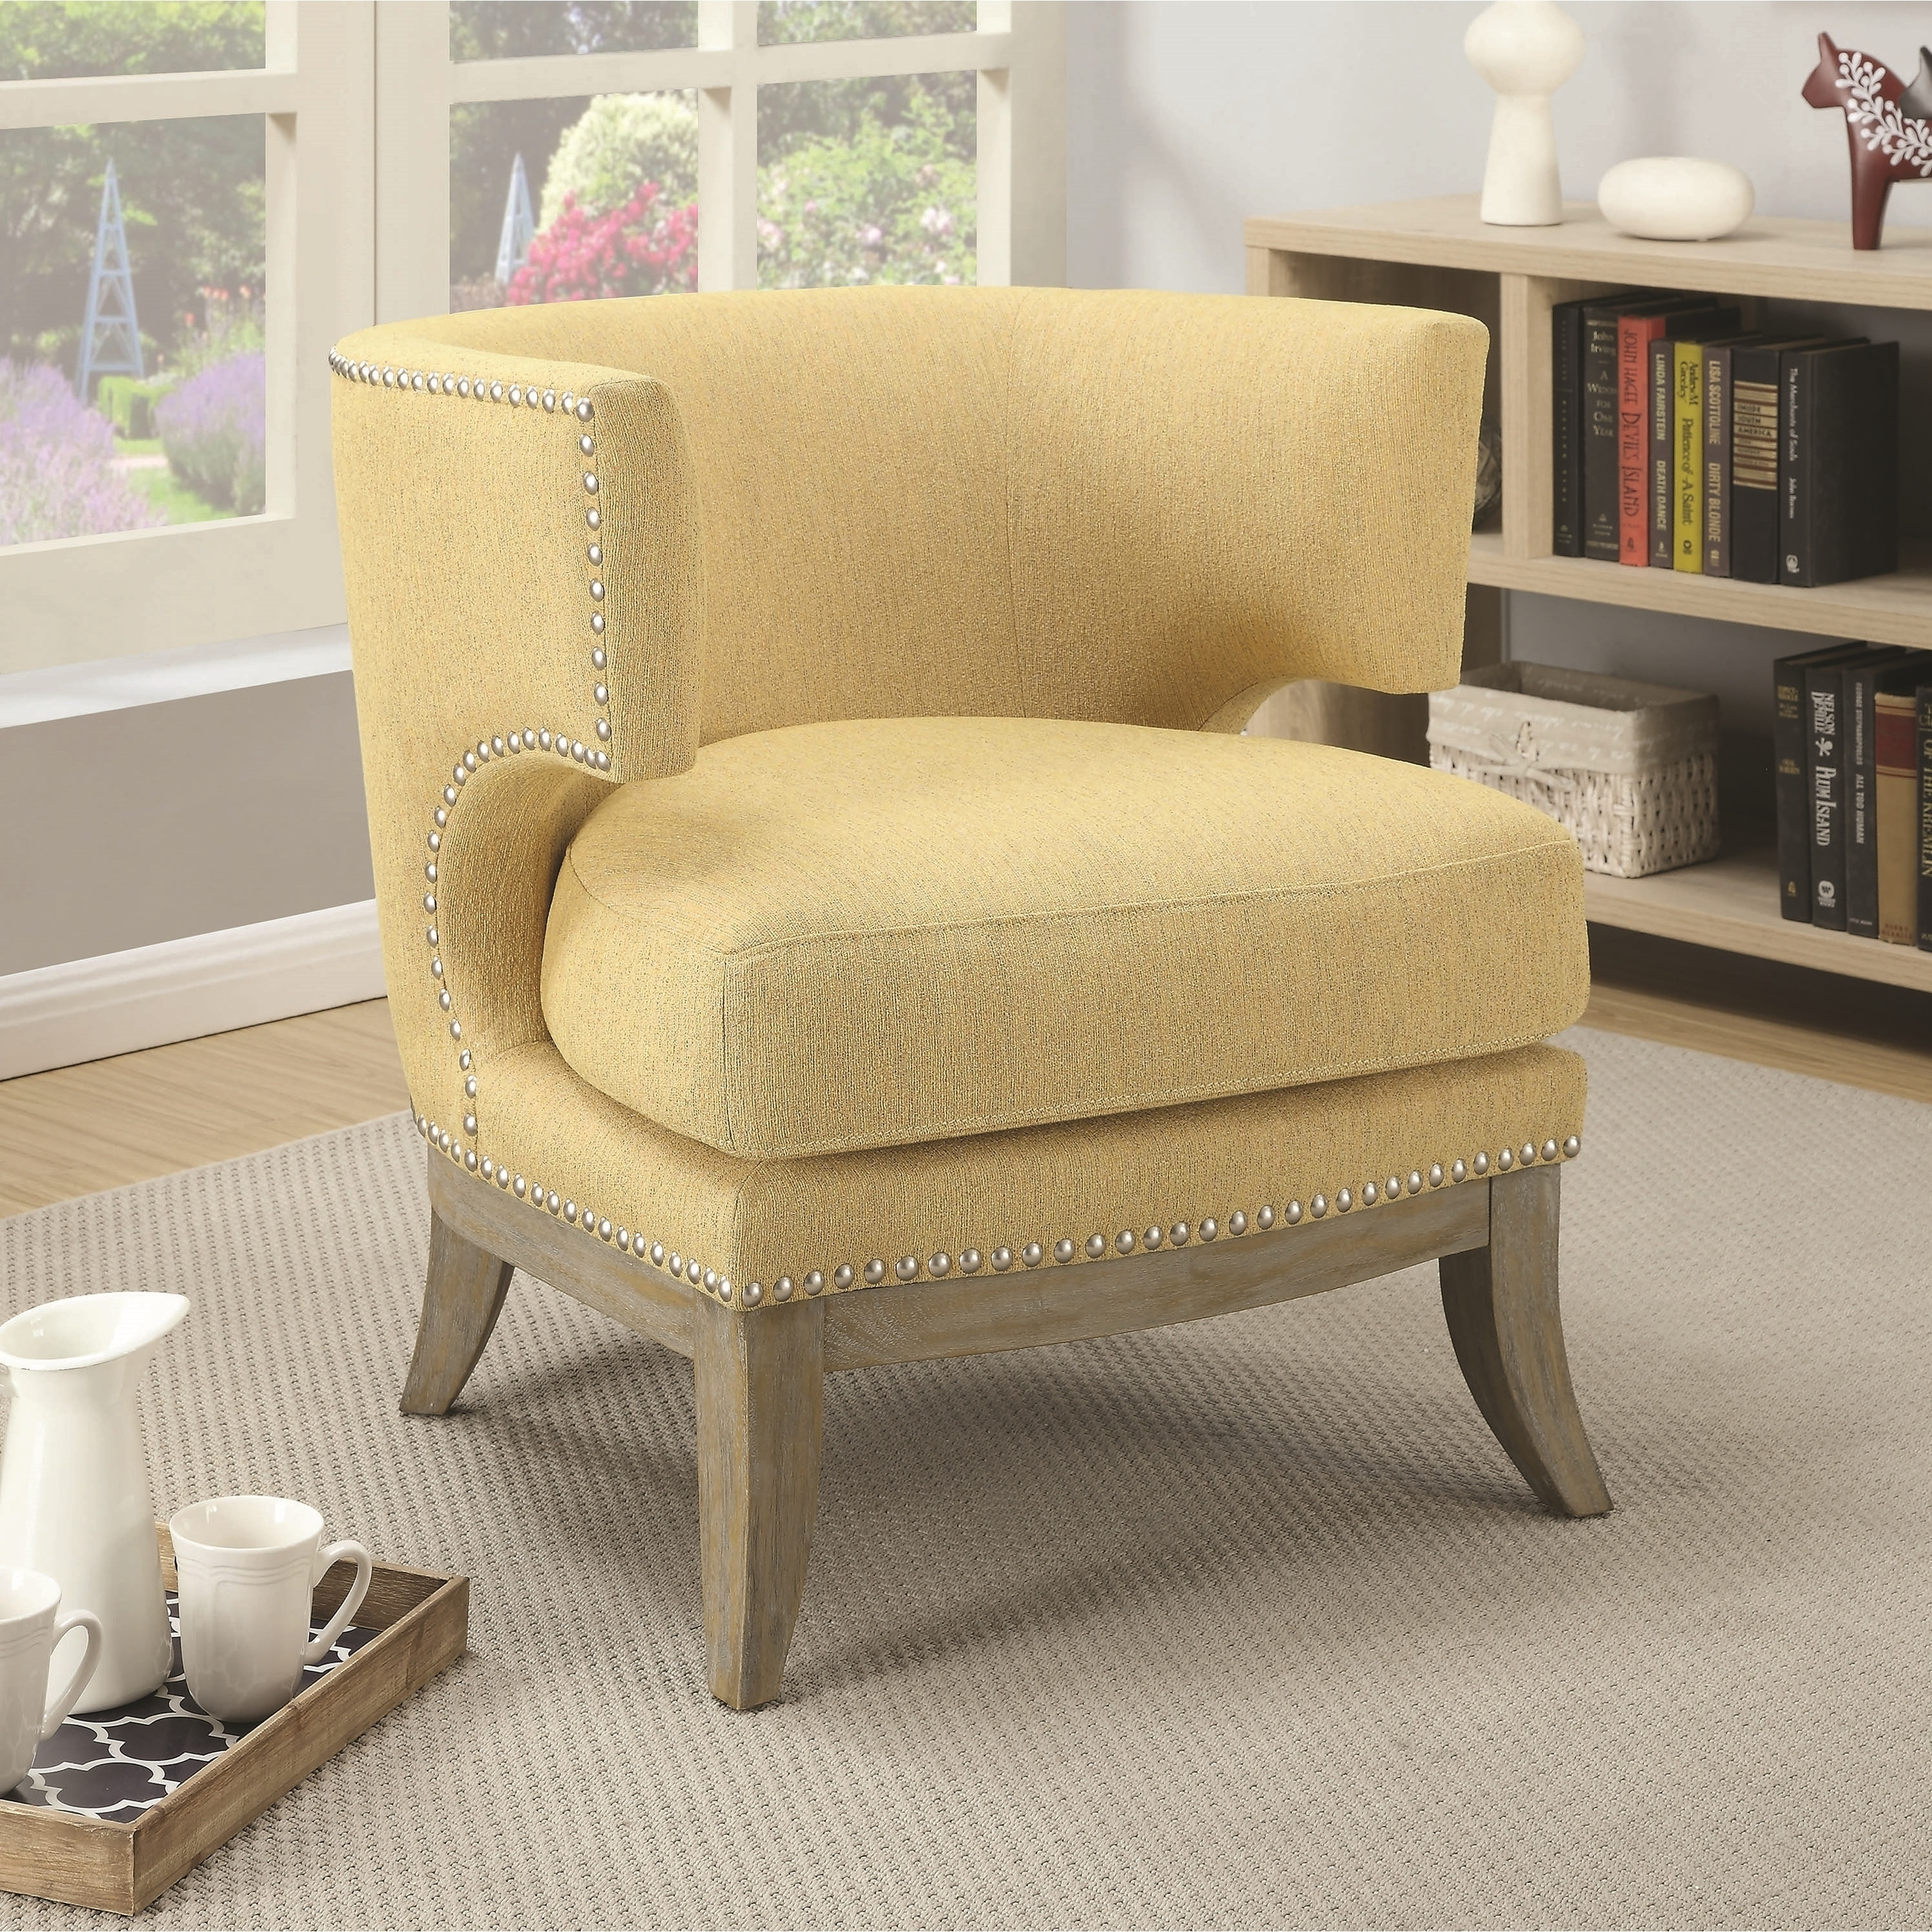 Mid Century Modern Design Living Room Accent Chair With Nailhead Trim On Sale Overstock 28425317